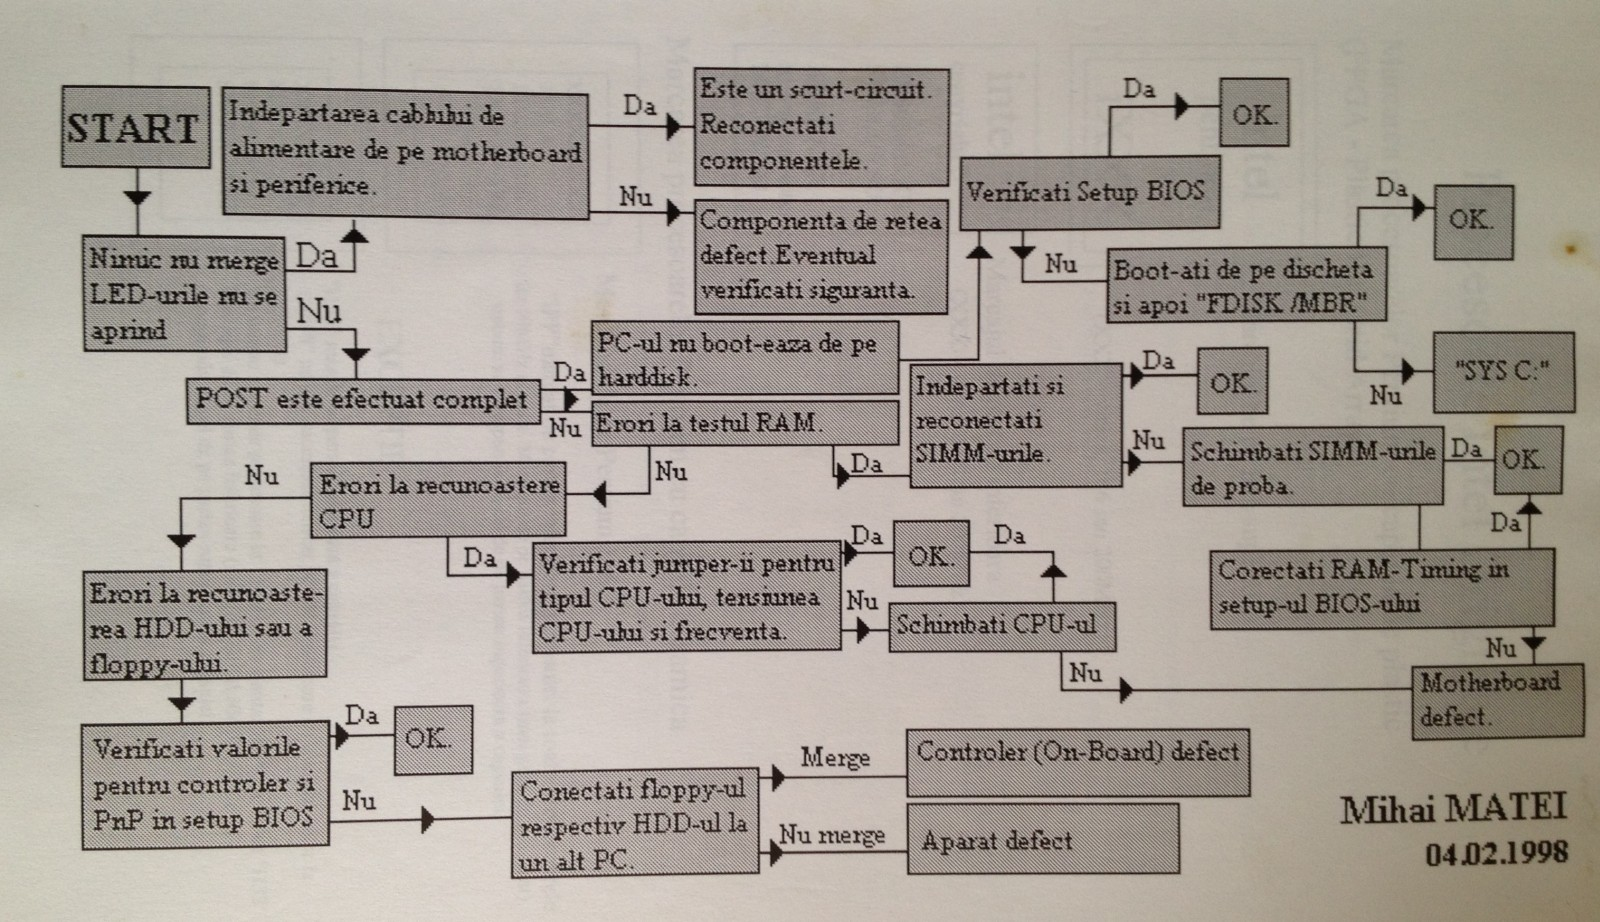 19980204-hardware-diagnosis-chart